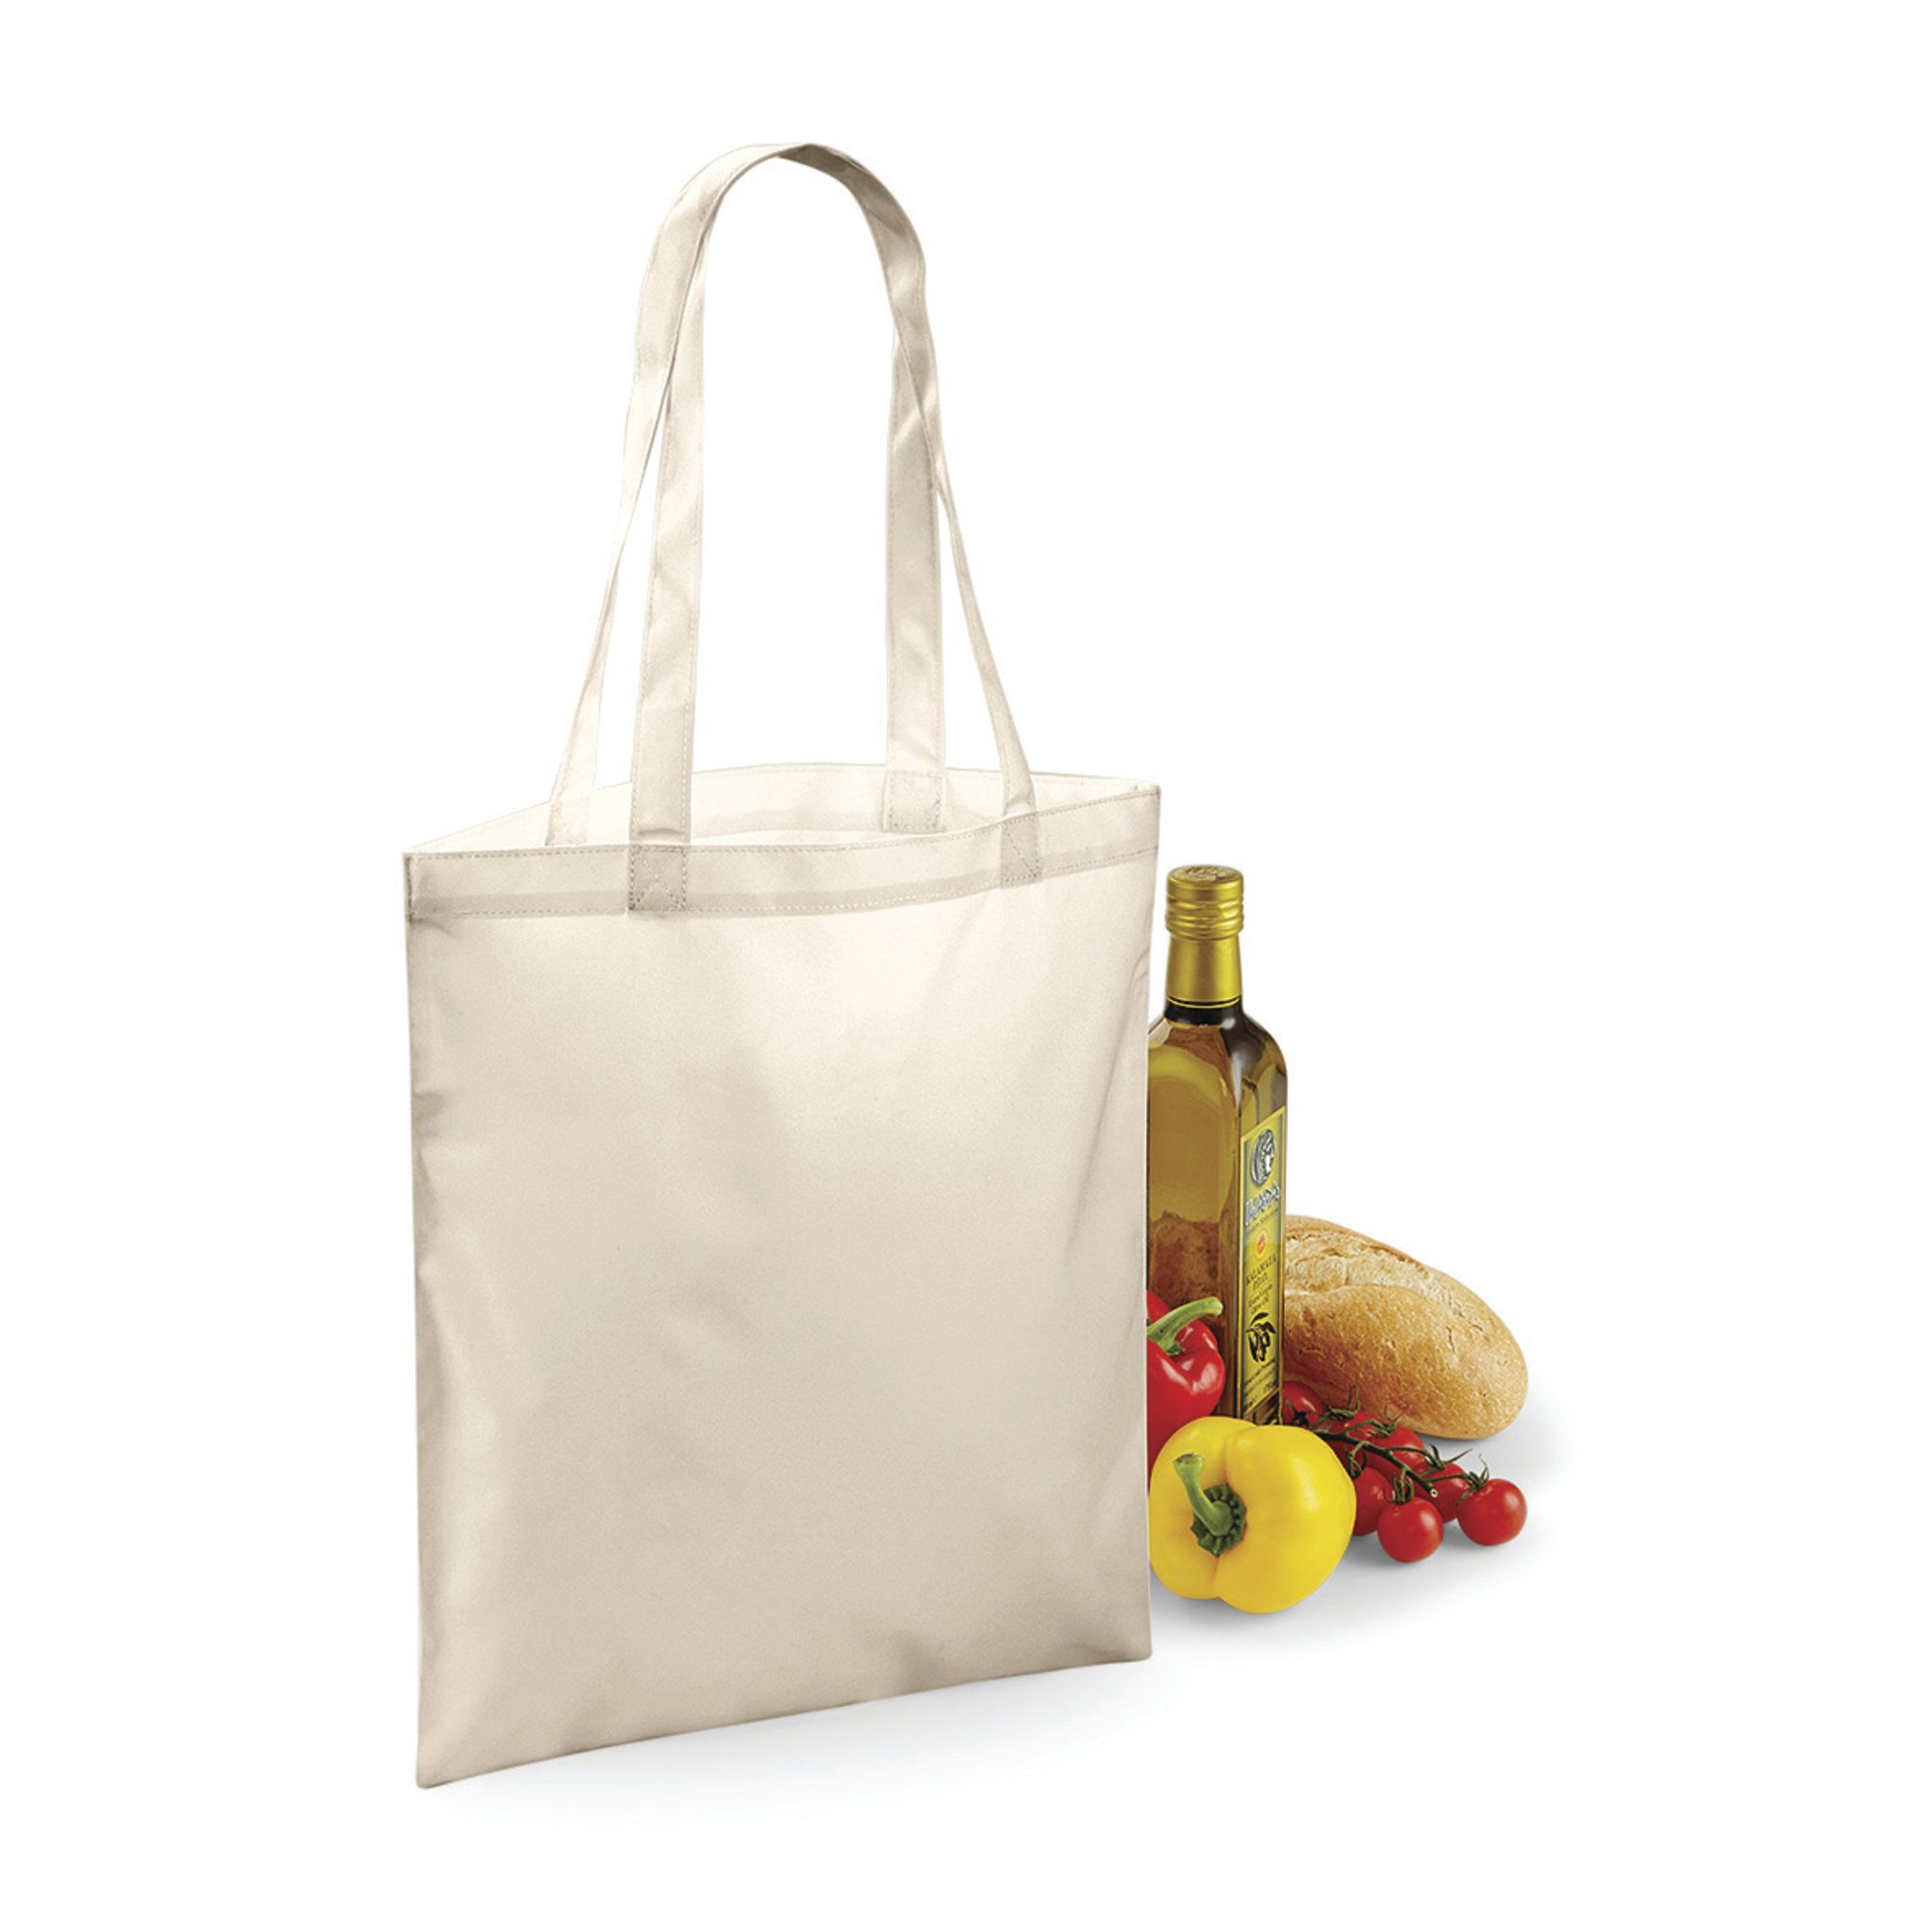 Sac shopping publicitaire Shooper - sac shopping personnalisable